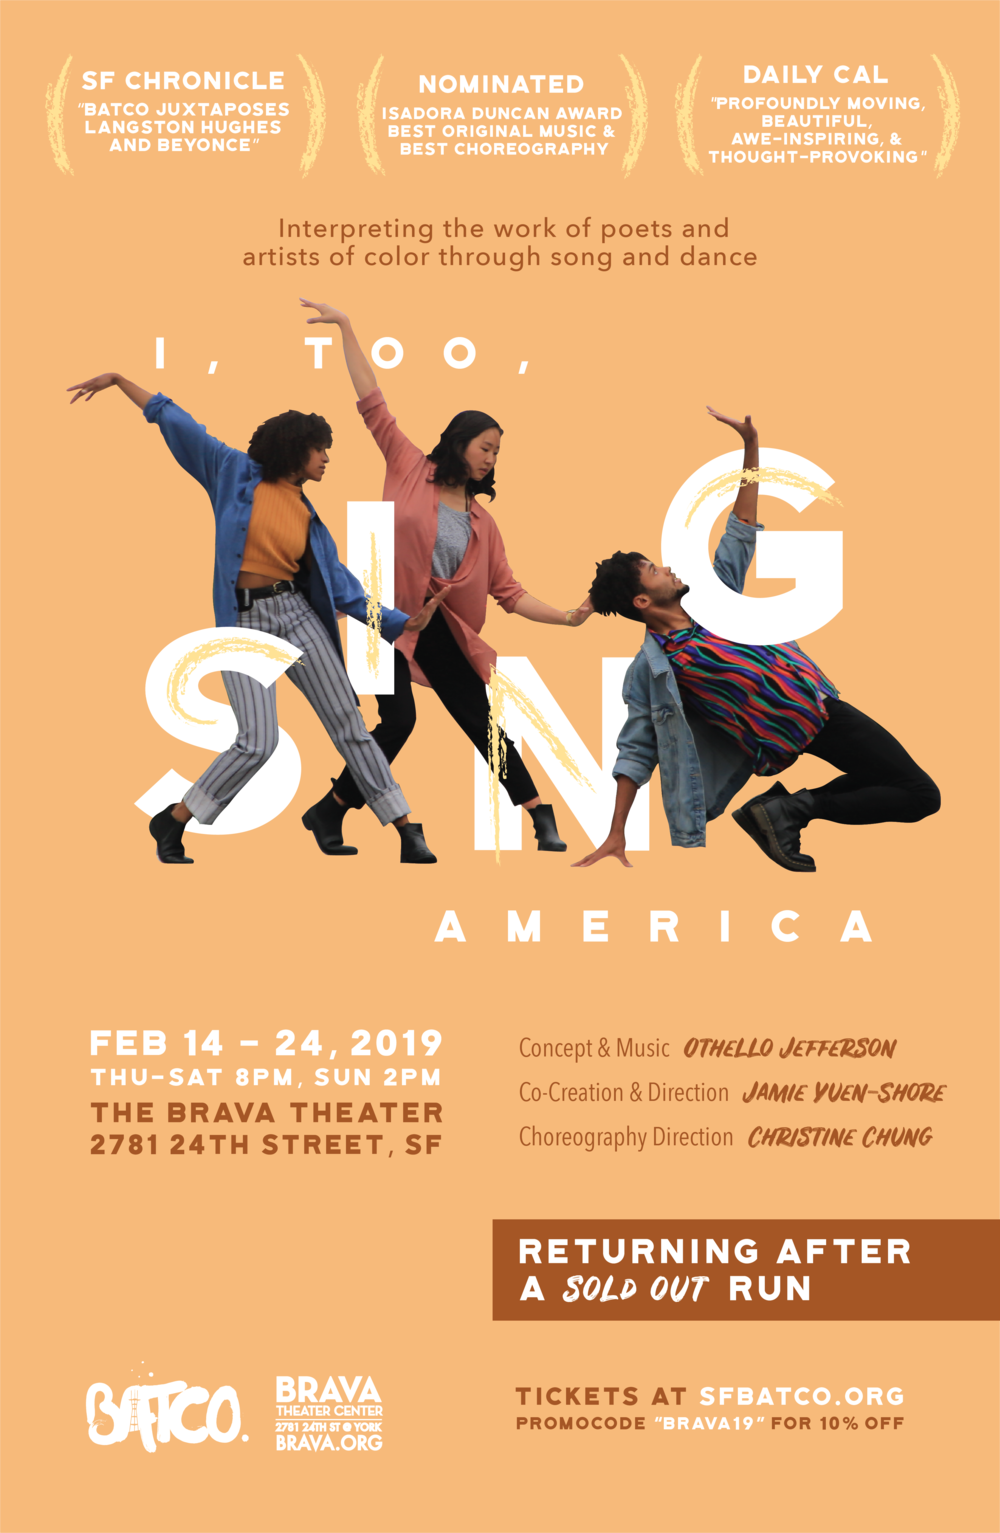 join us @the brava theater febRUARY 14 - 24 - Using a diverse cast of singers, actors, poets, and performers,